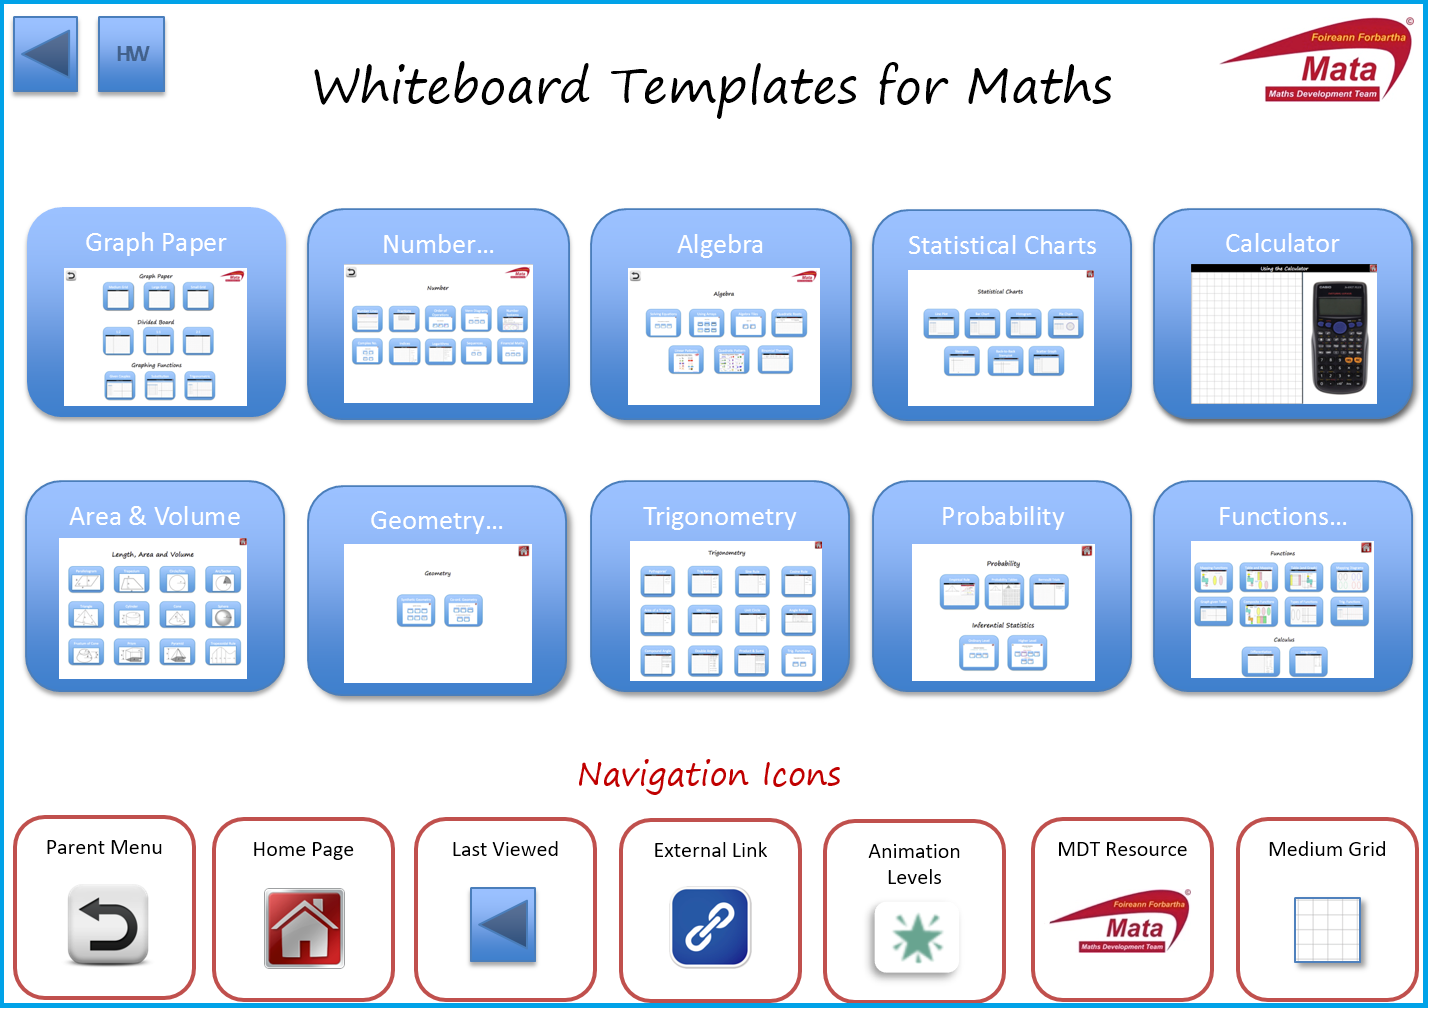 Project maths download whiteboard templates you can download the whiteboard powerpoint templates whiteboard templates 179 toneelgroepblik Images